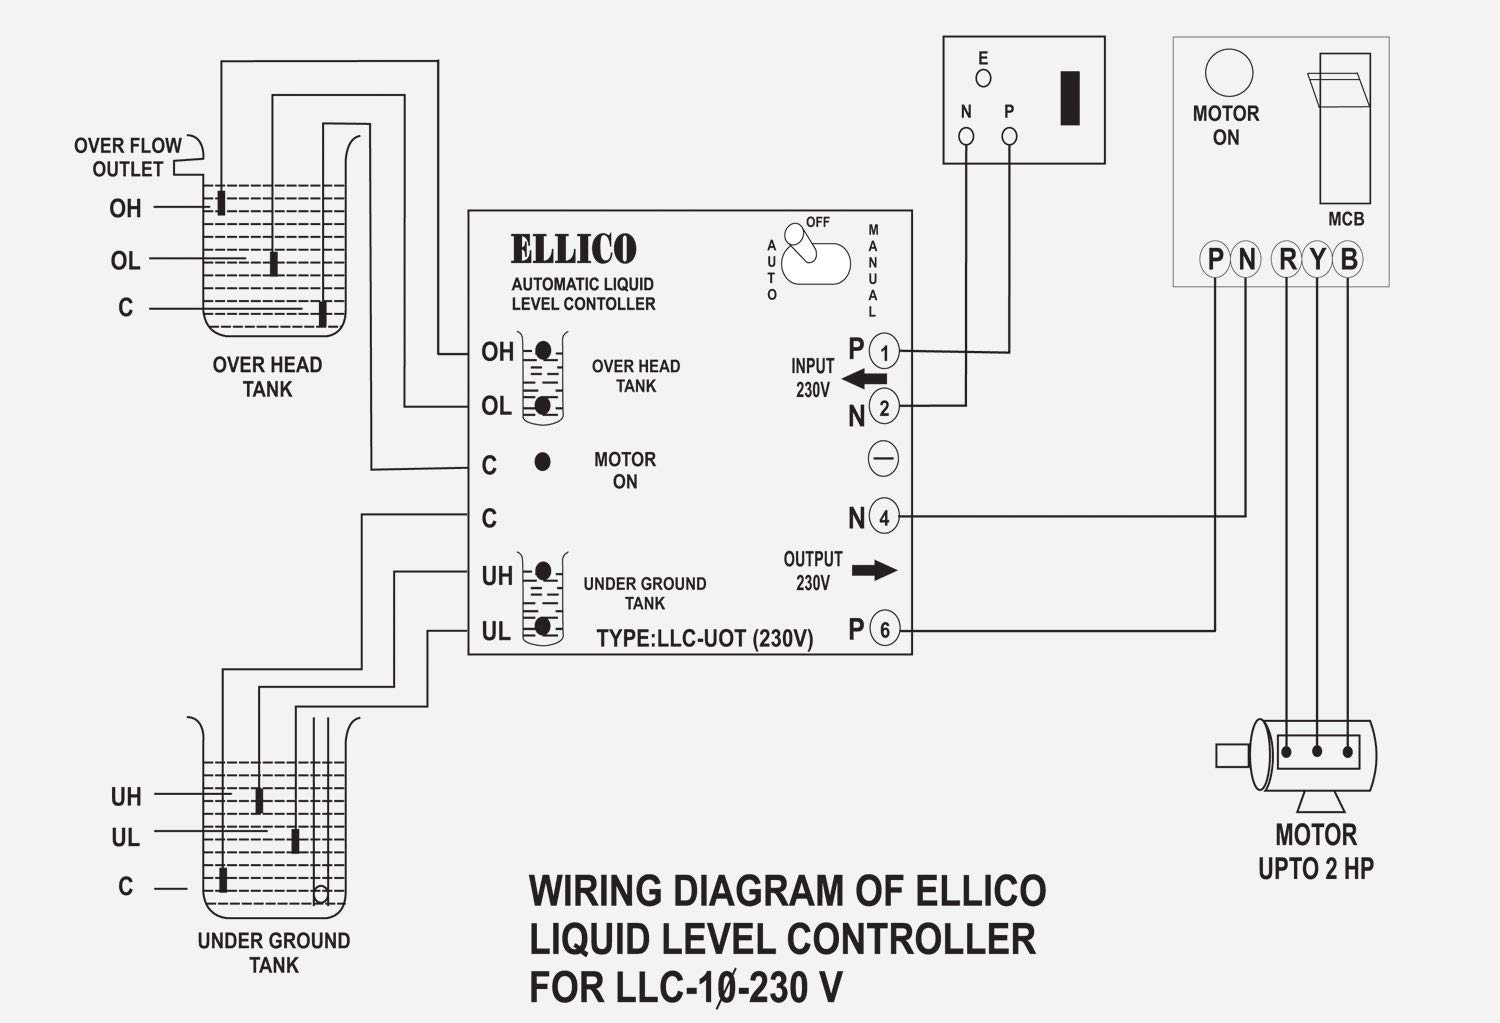 Ellico Automatic Liquid Level Controller on